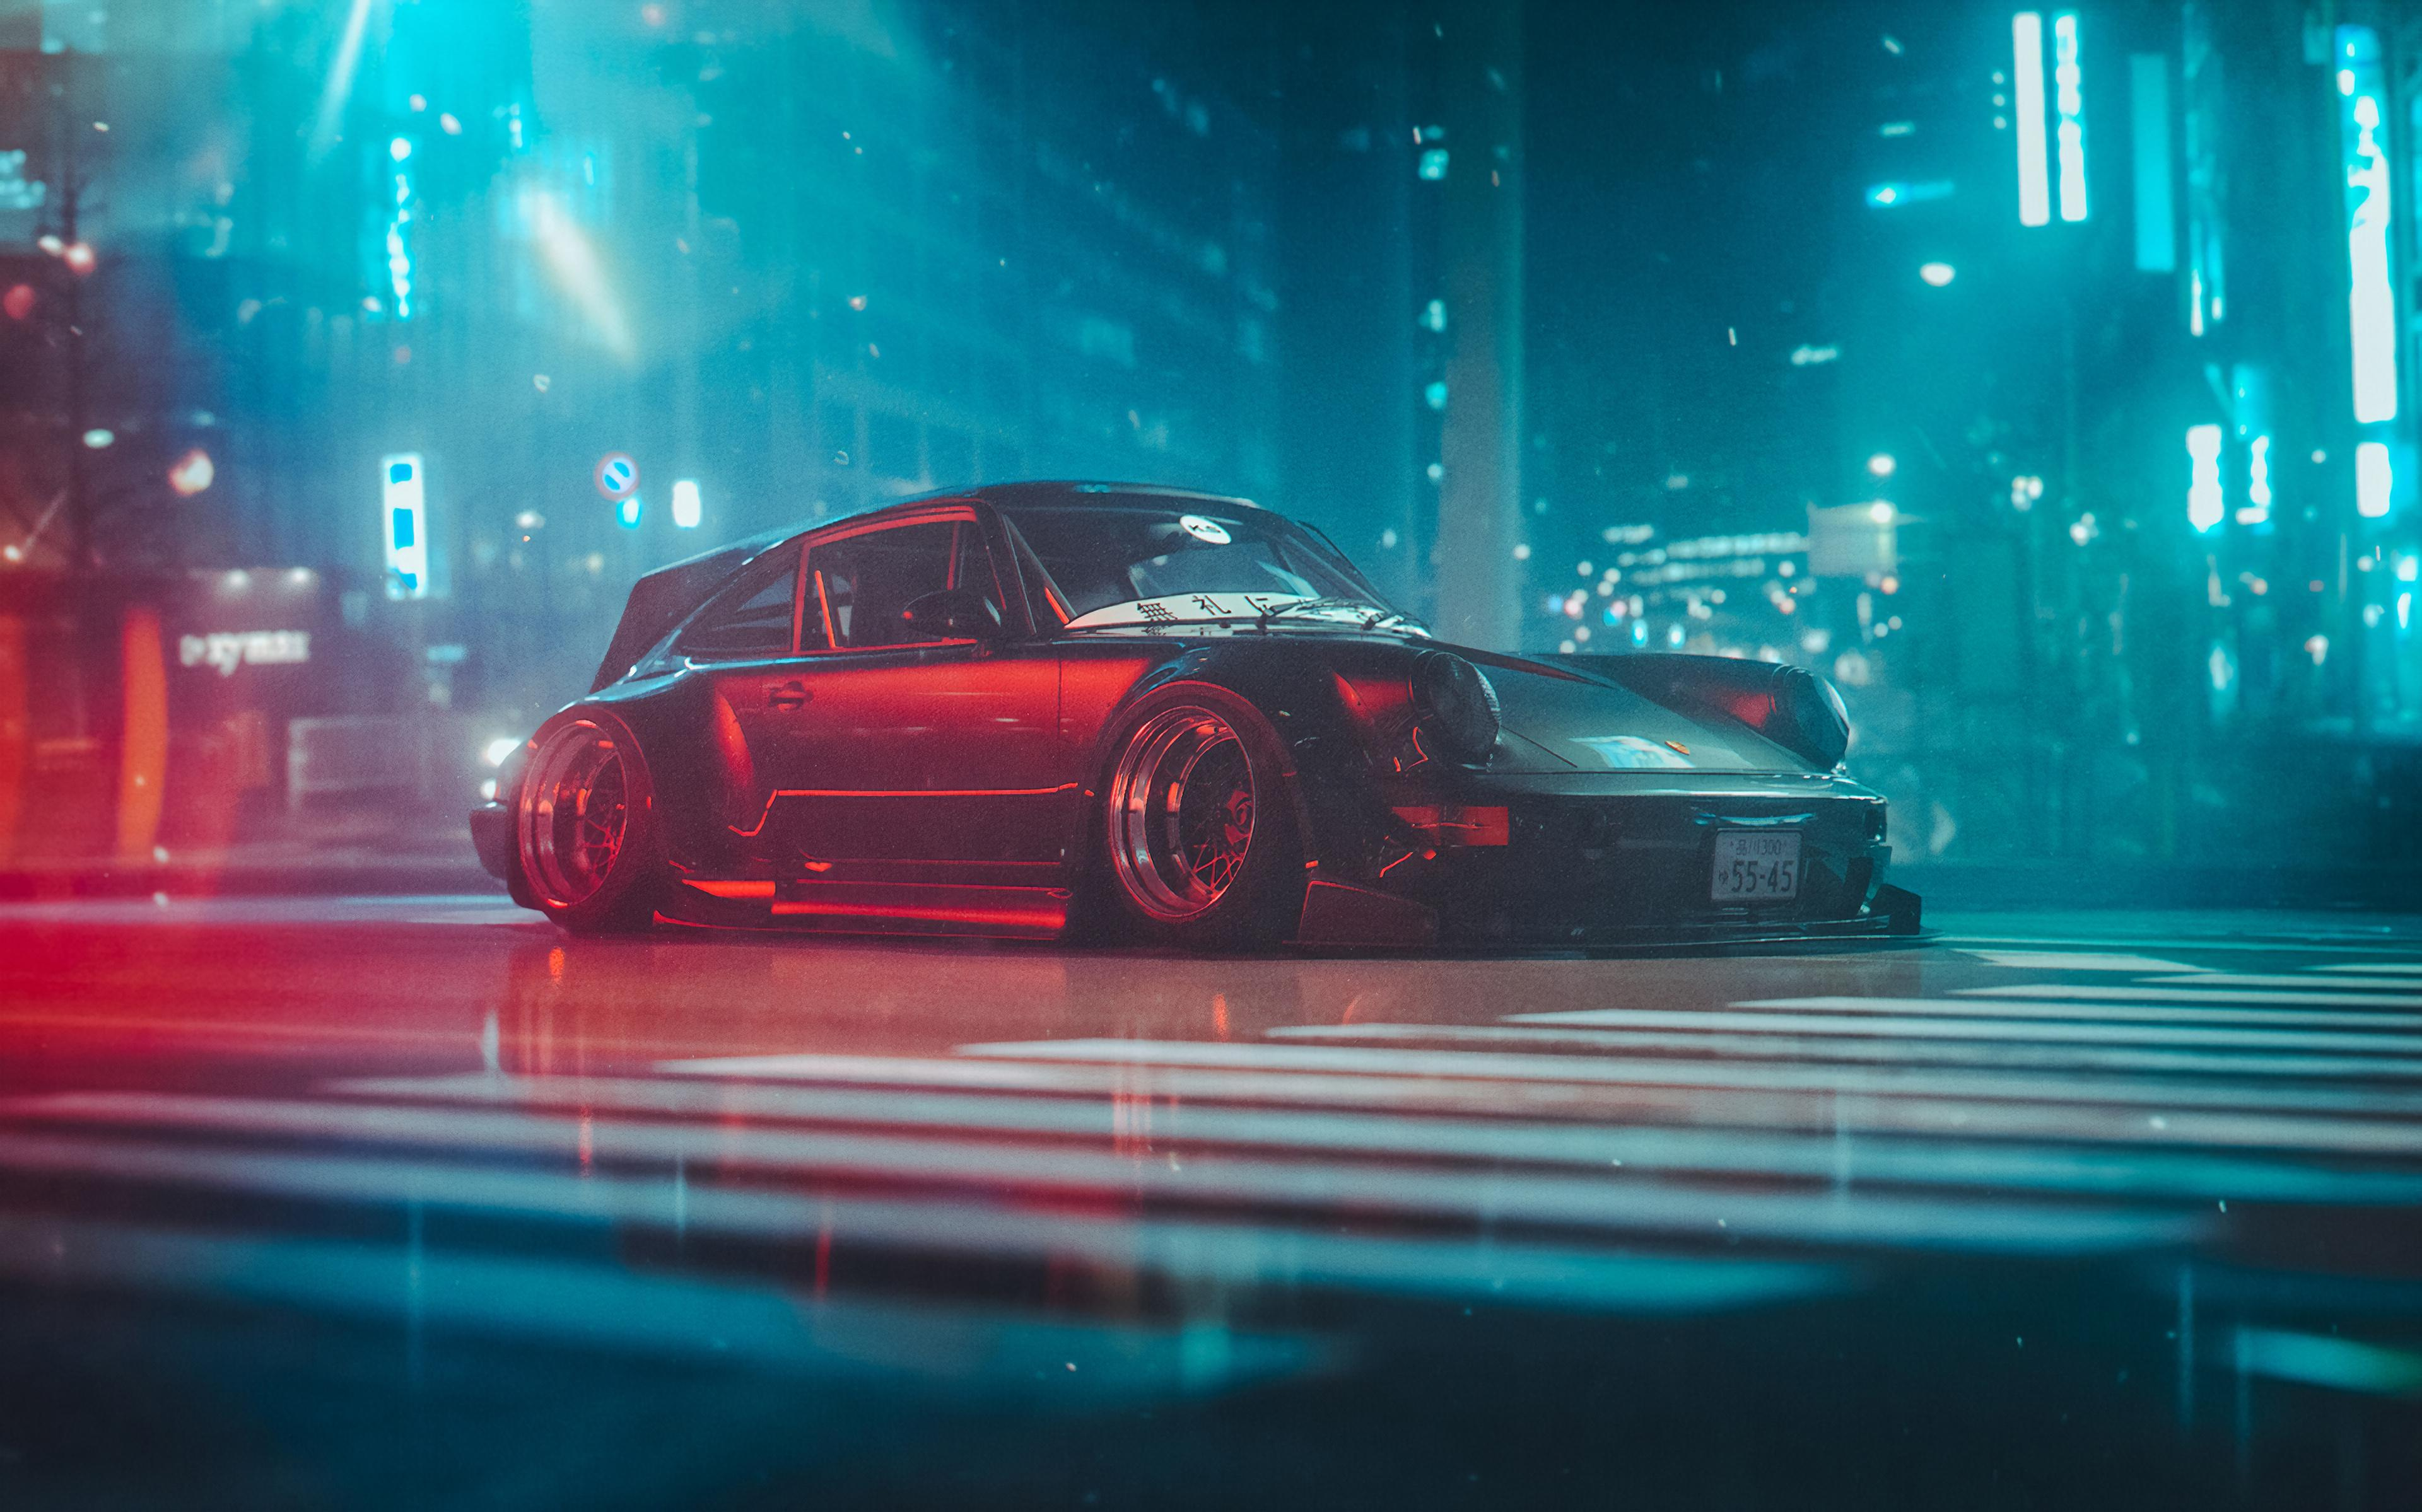 RWB 964 Wagon, HD Cars, 4k Wallpapers, Images, Backgrounds